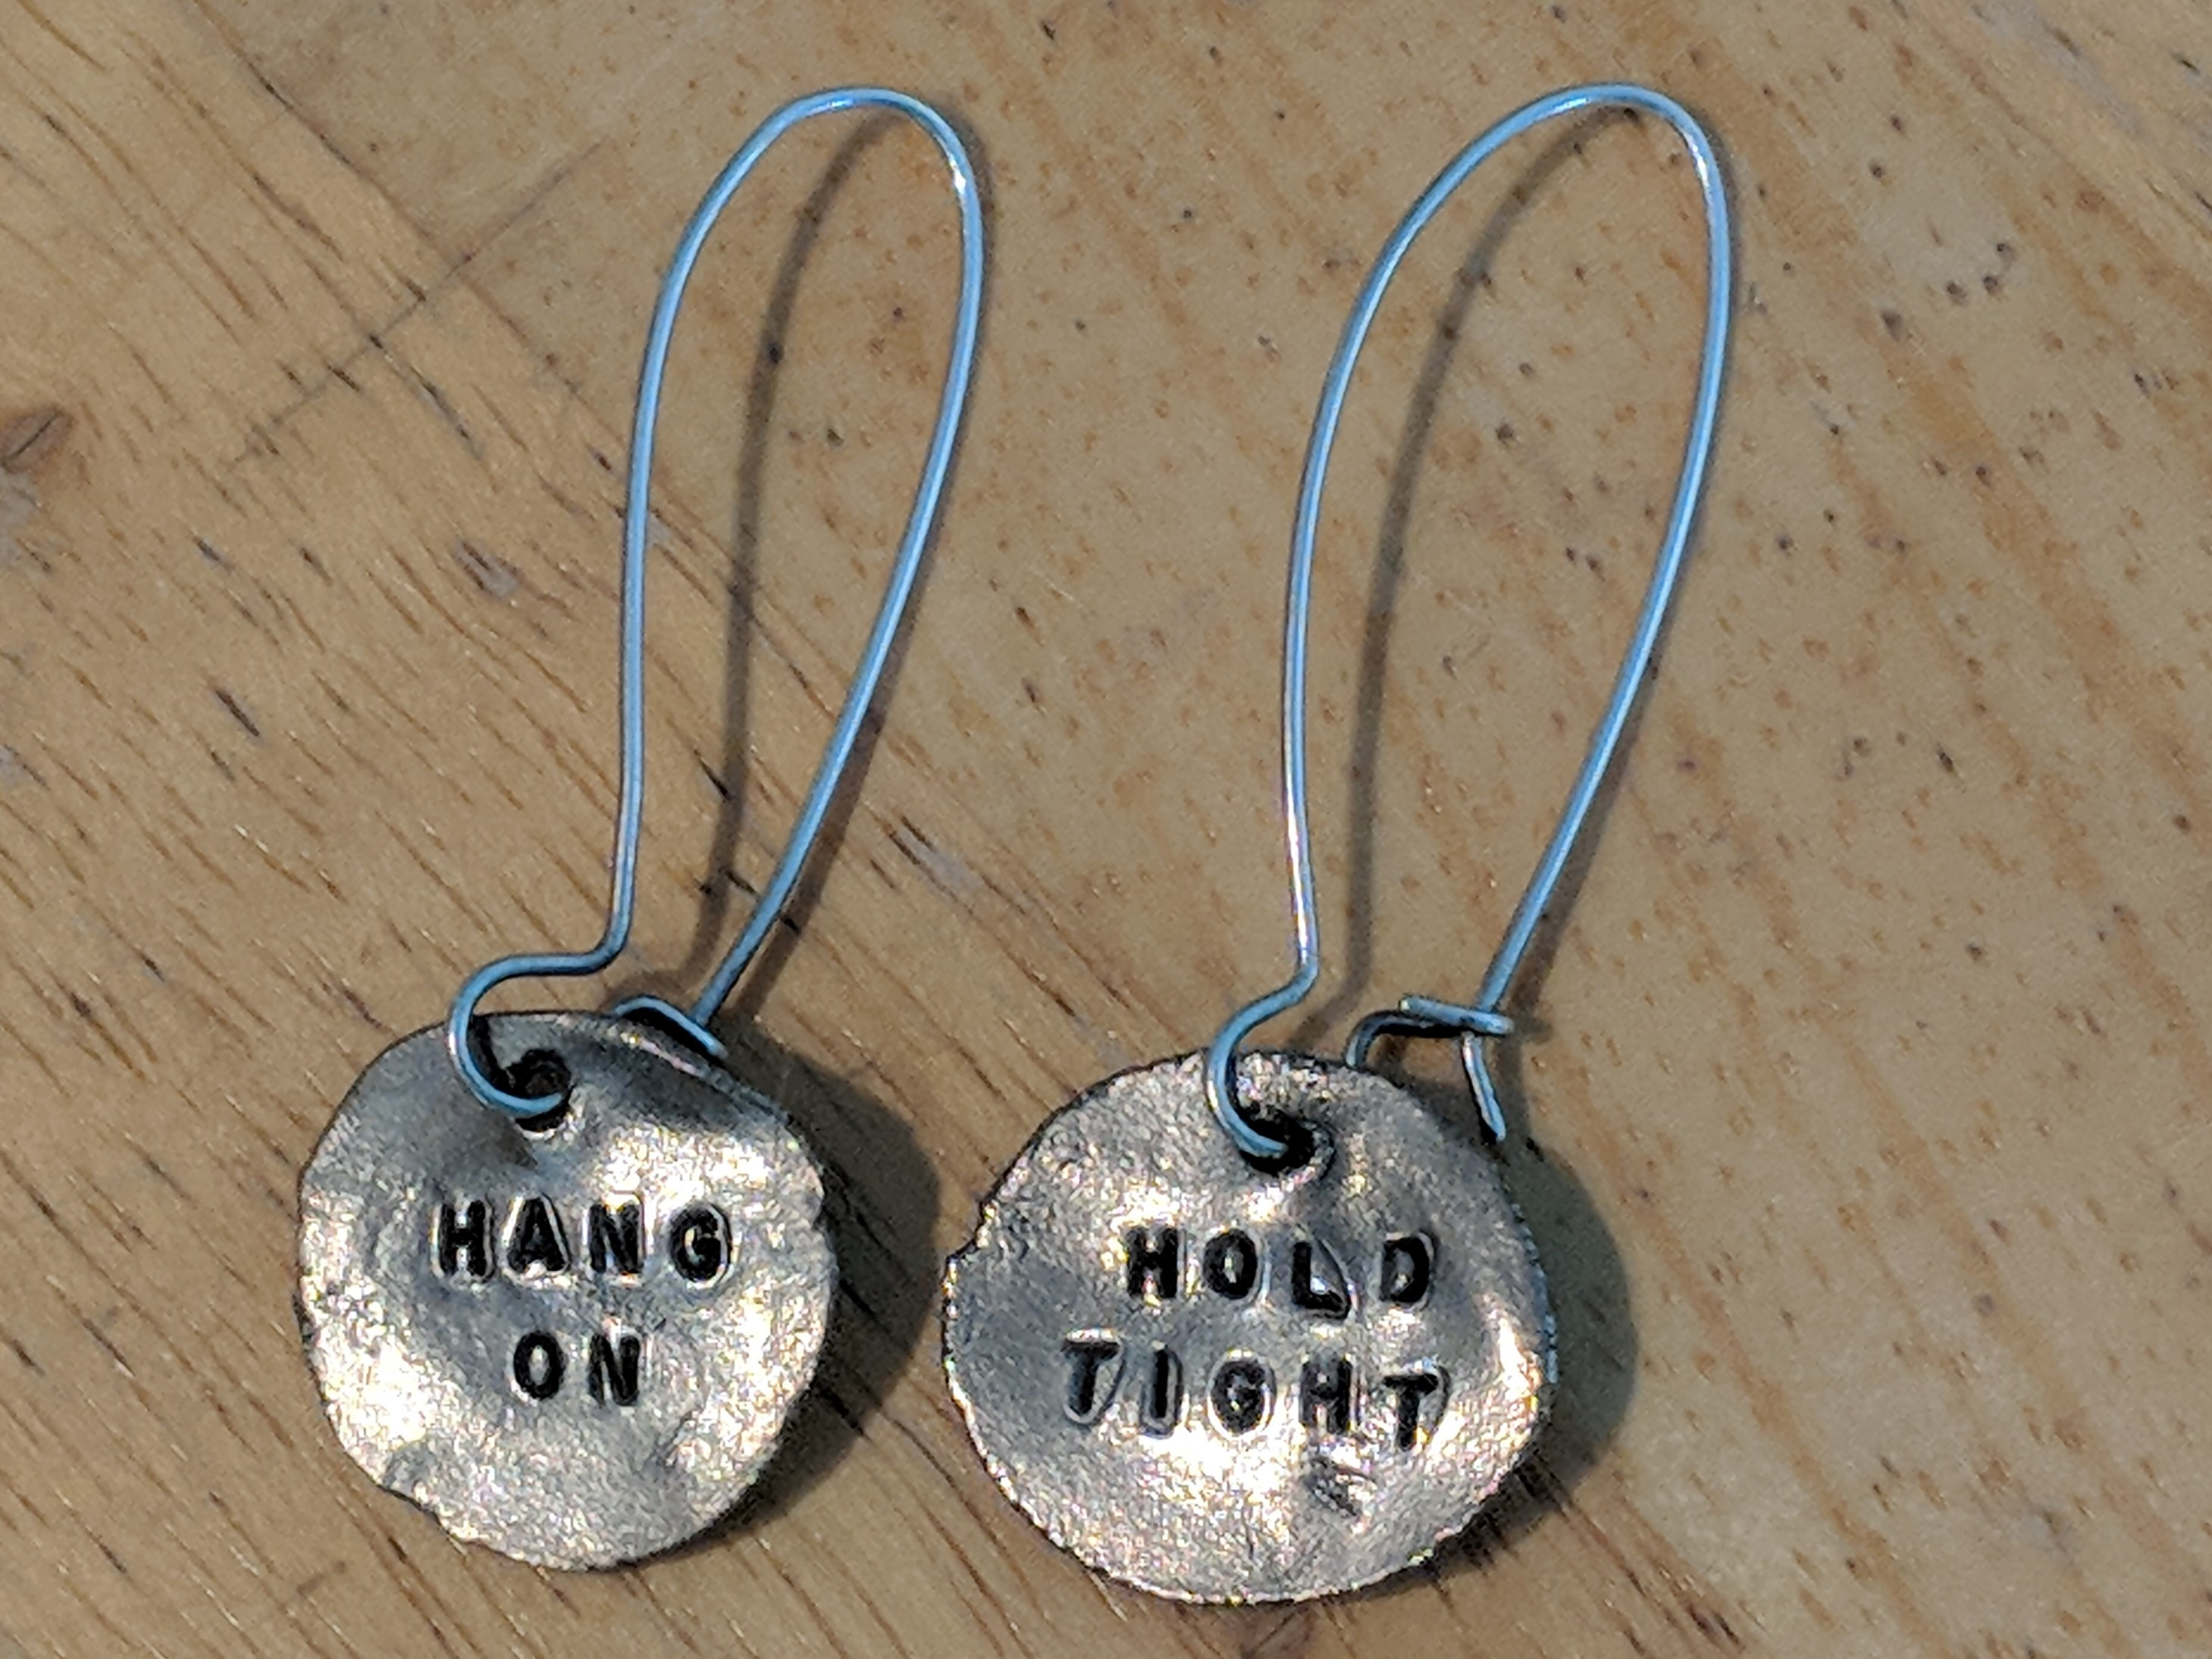 hang-on-hold-tight-earrings